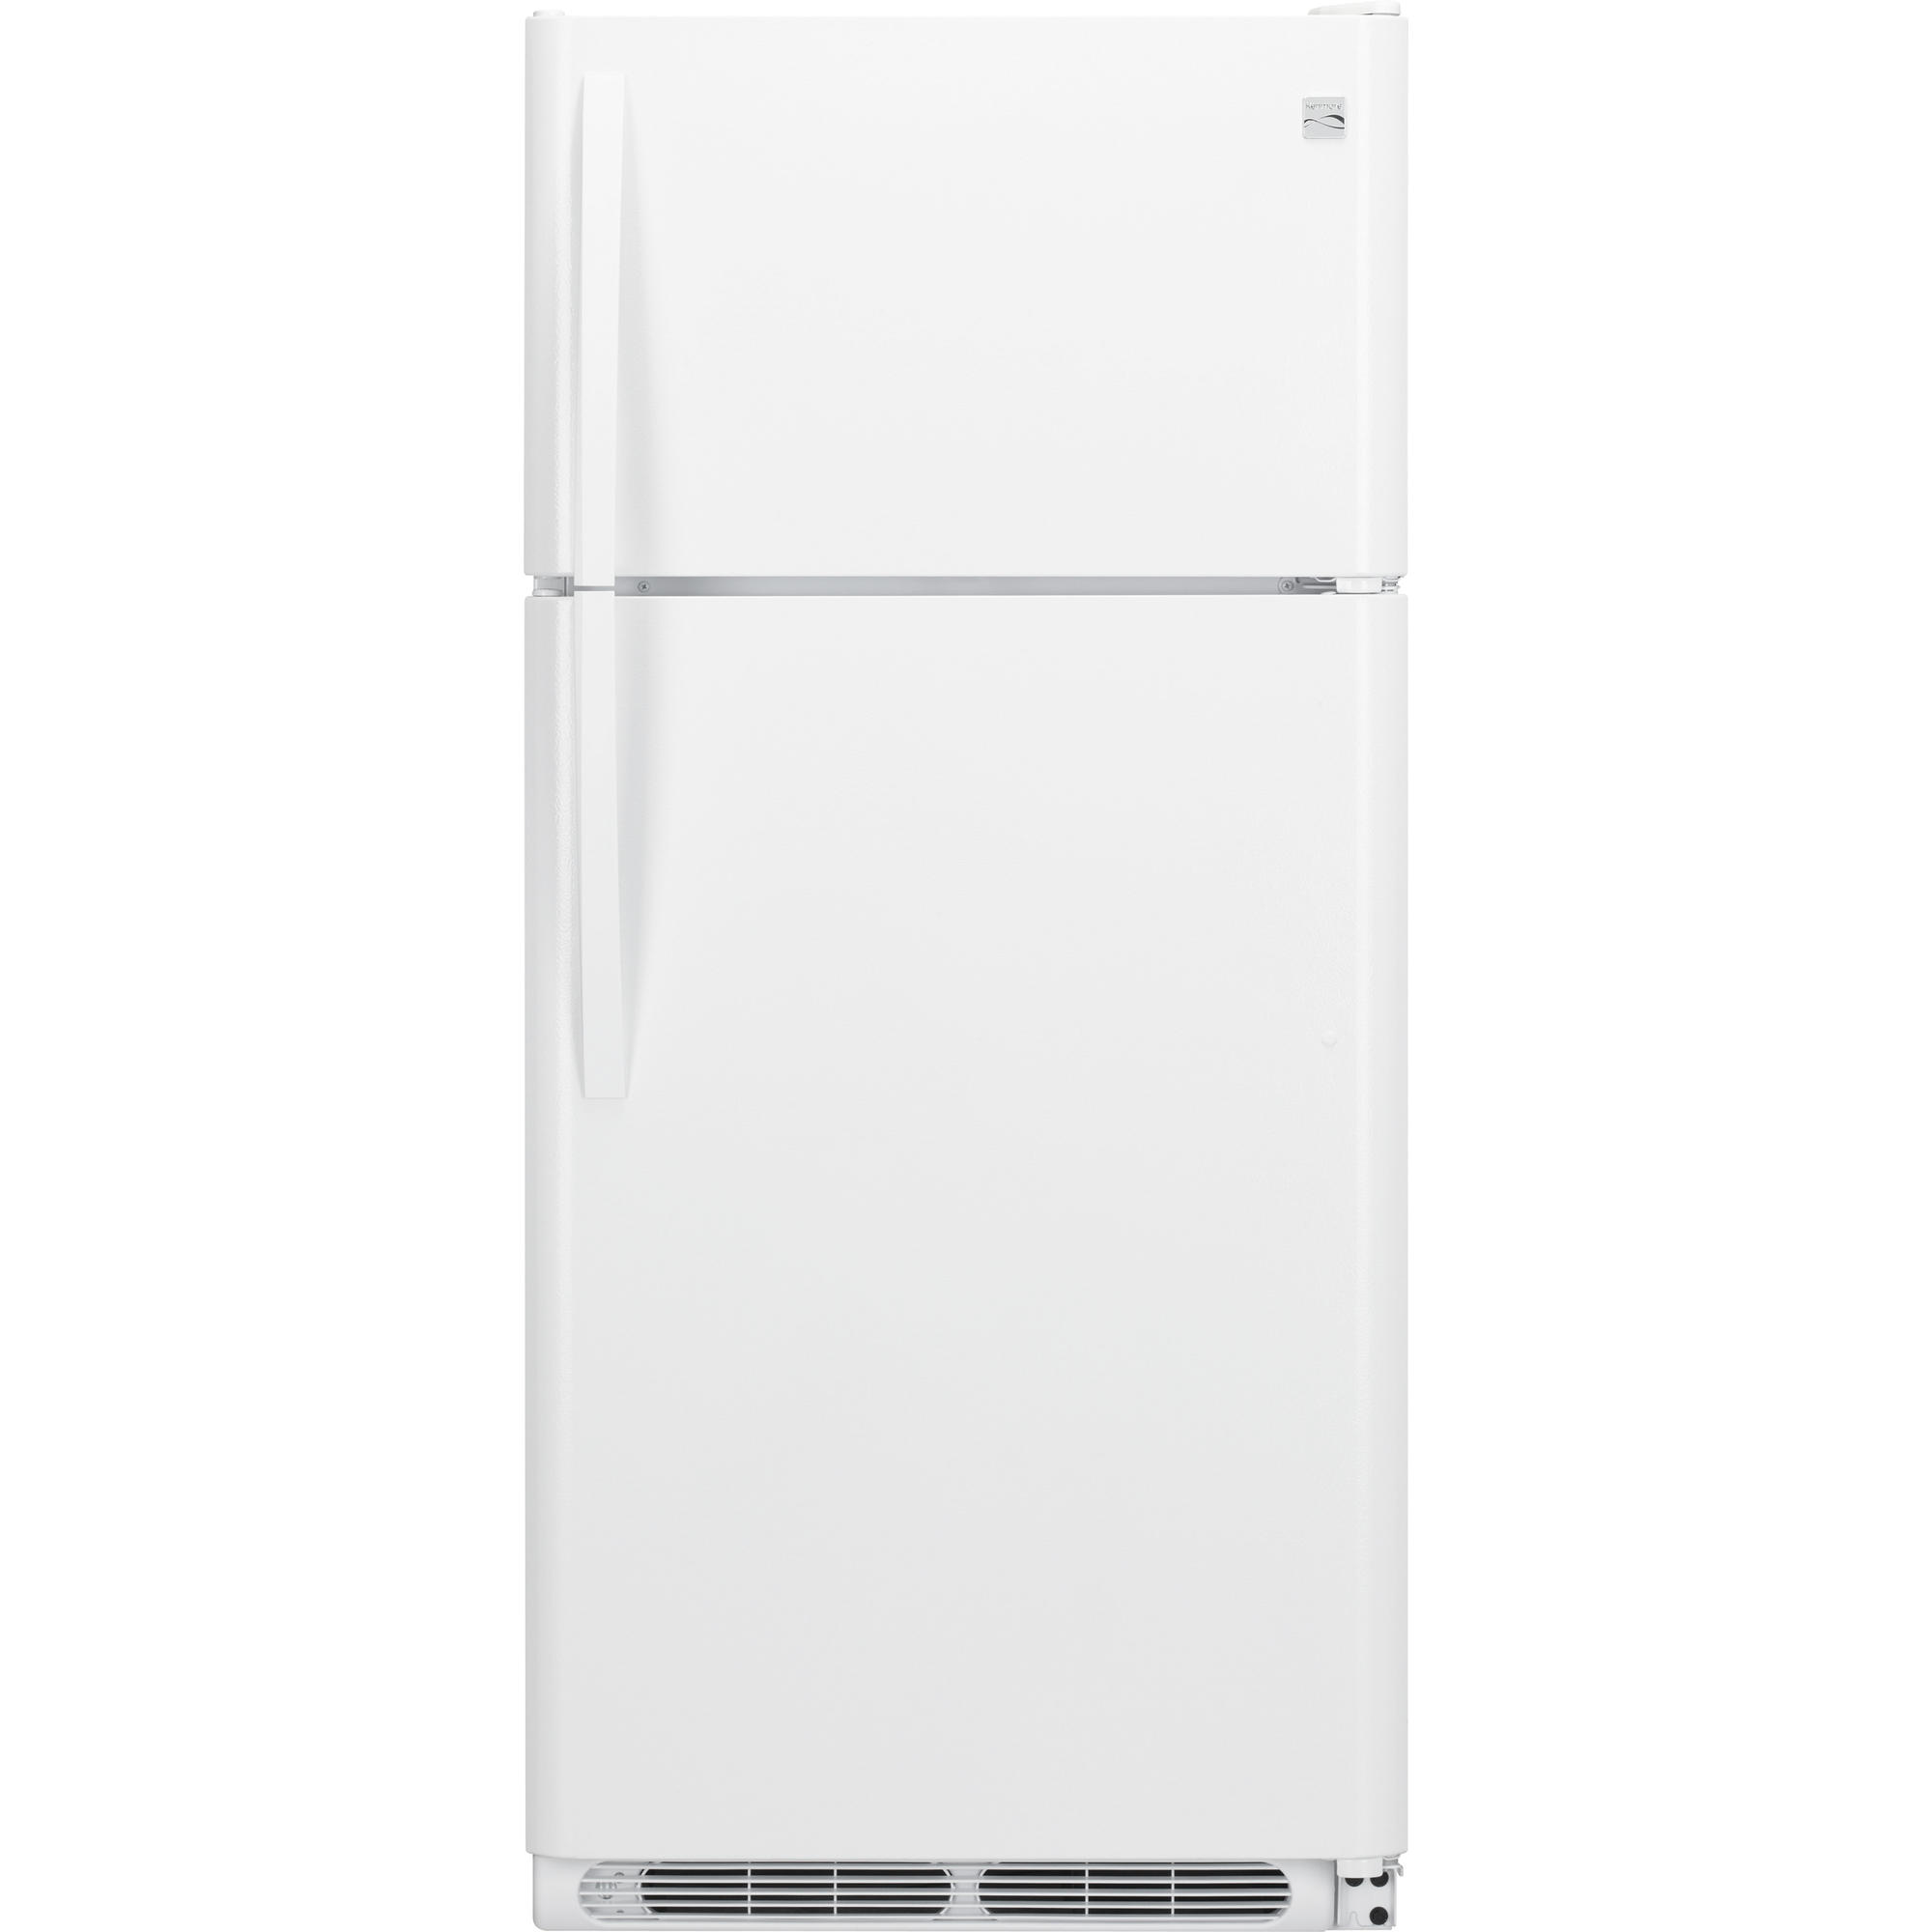 60082-20-4-cu-ft-Top-Freezer-Refrigerator-White